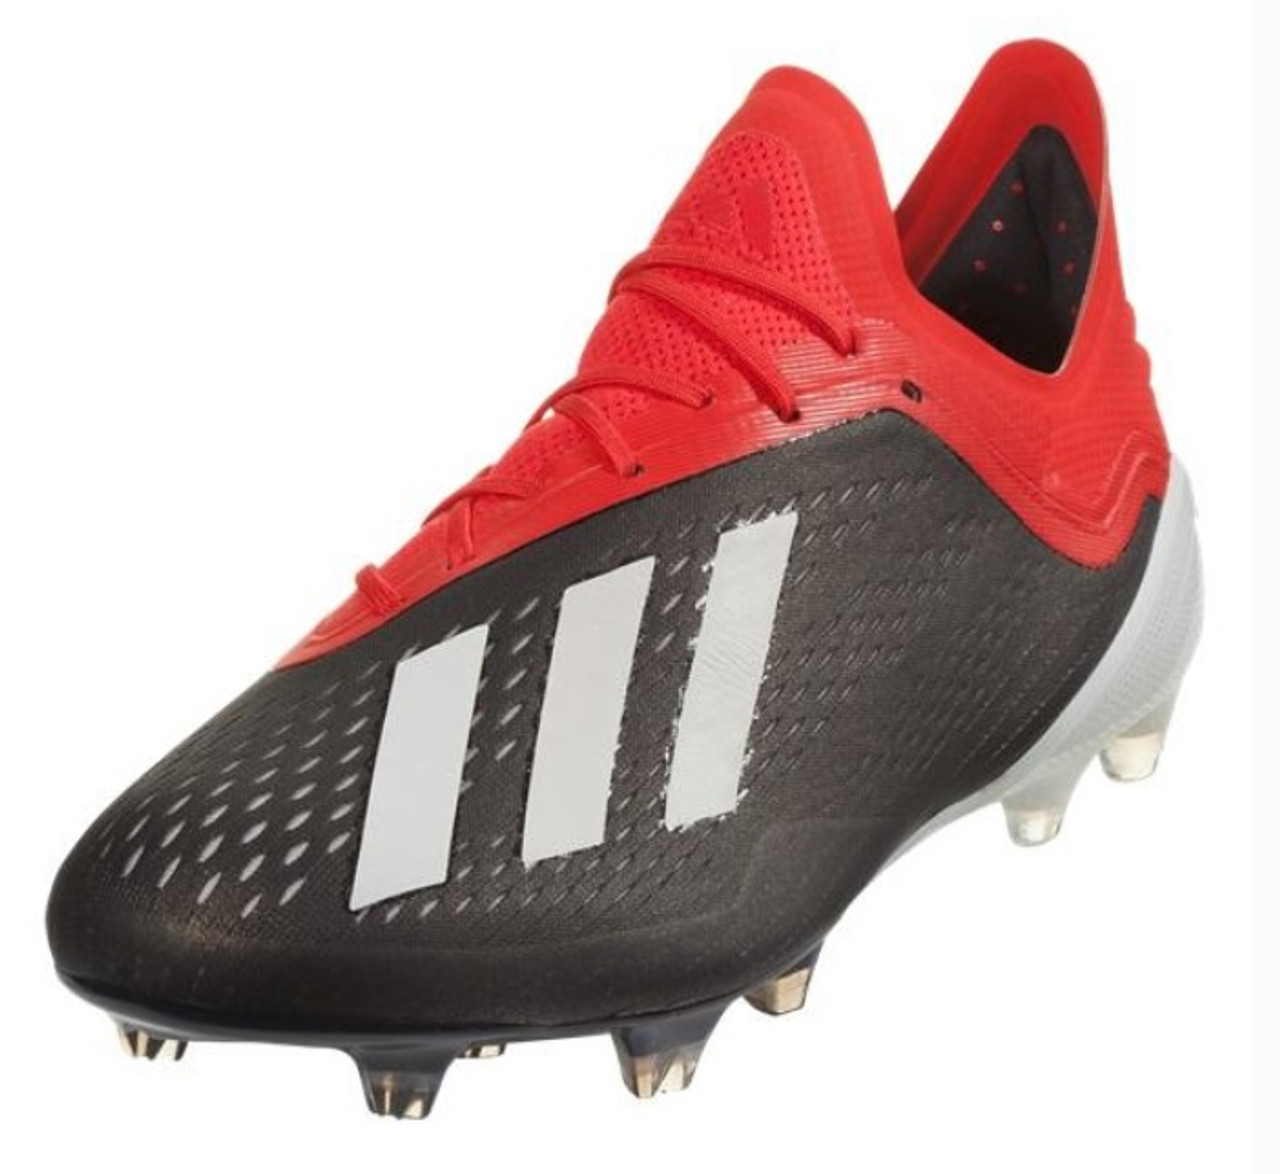 54b860220 Adidas X 18.1 FG - Core Black White Active Red (112818) - ohp soccer